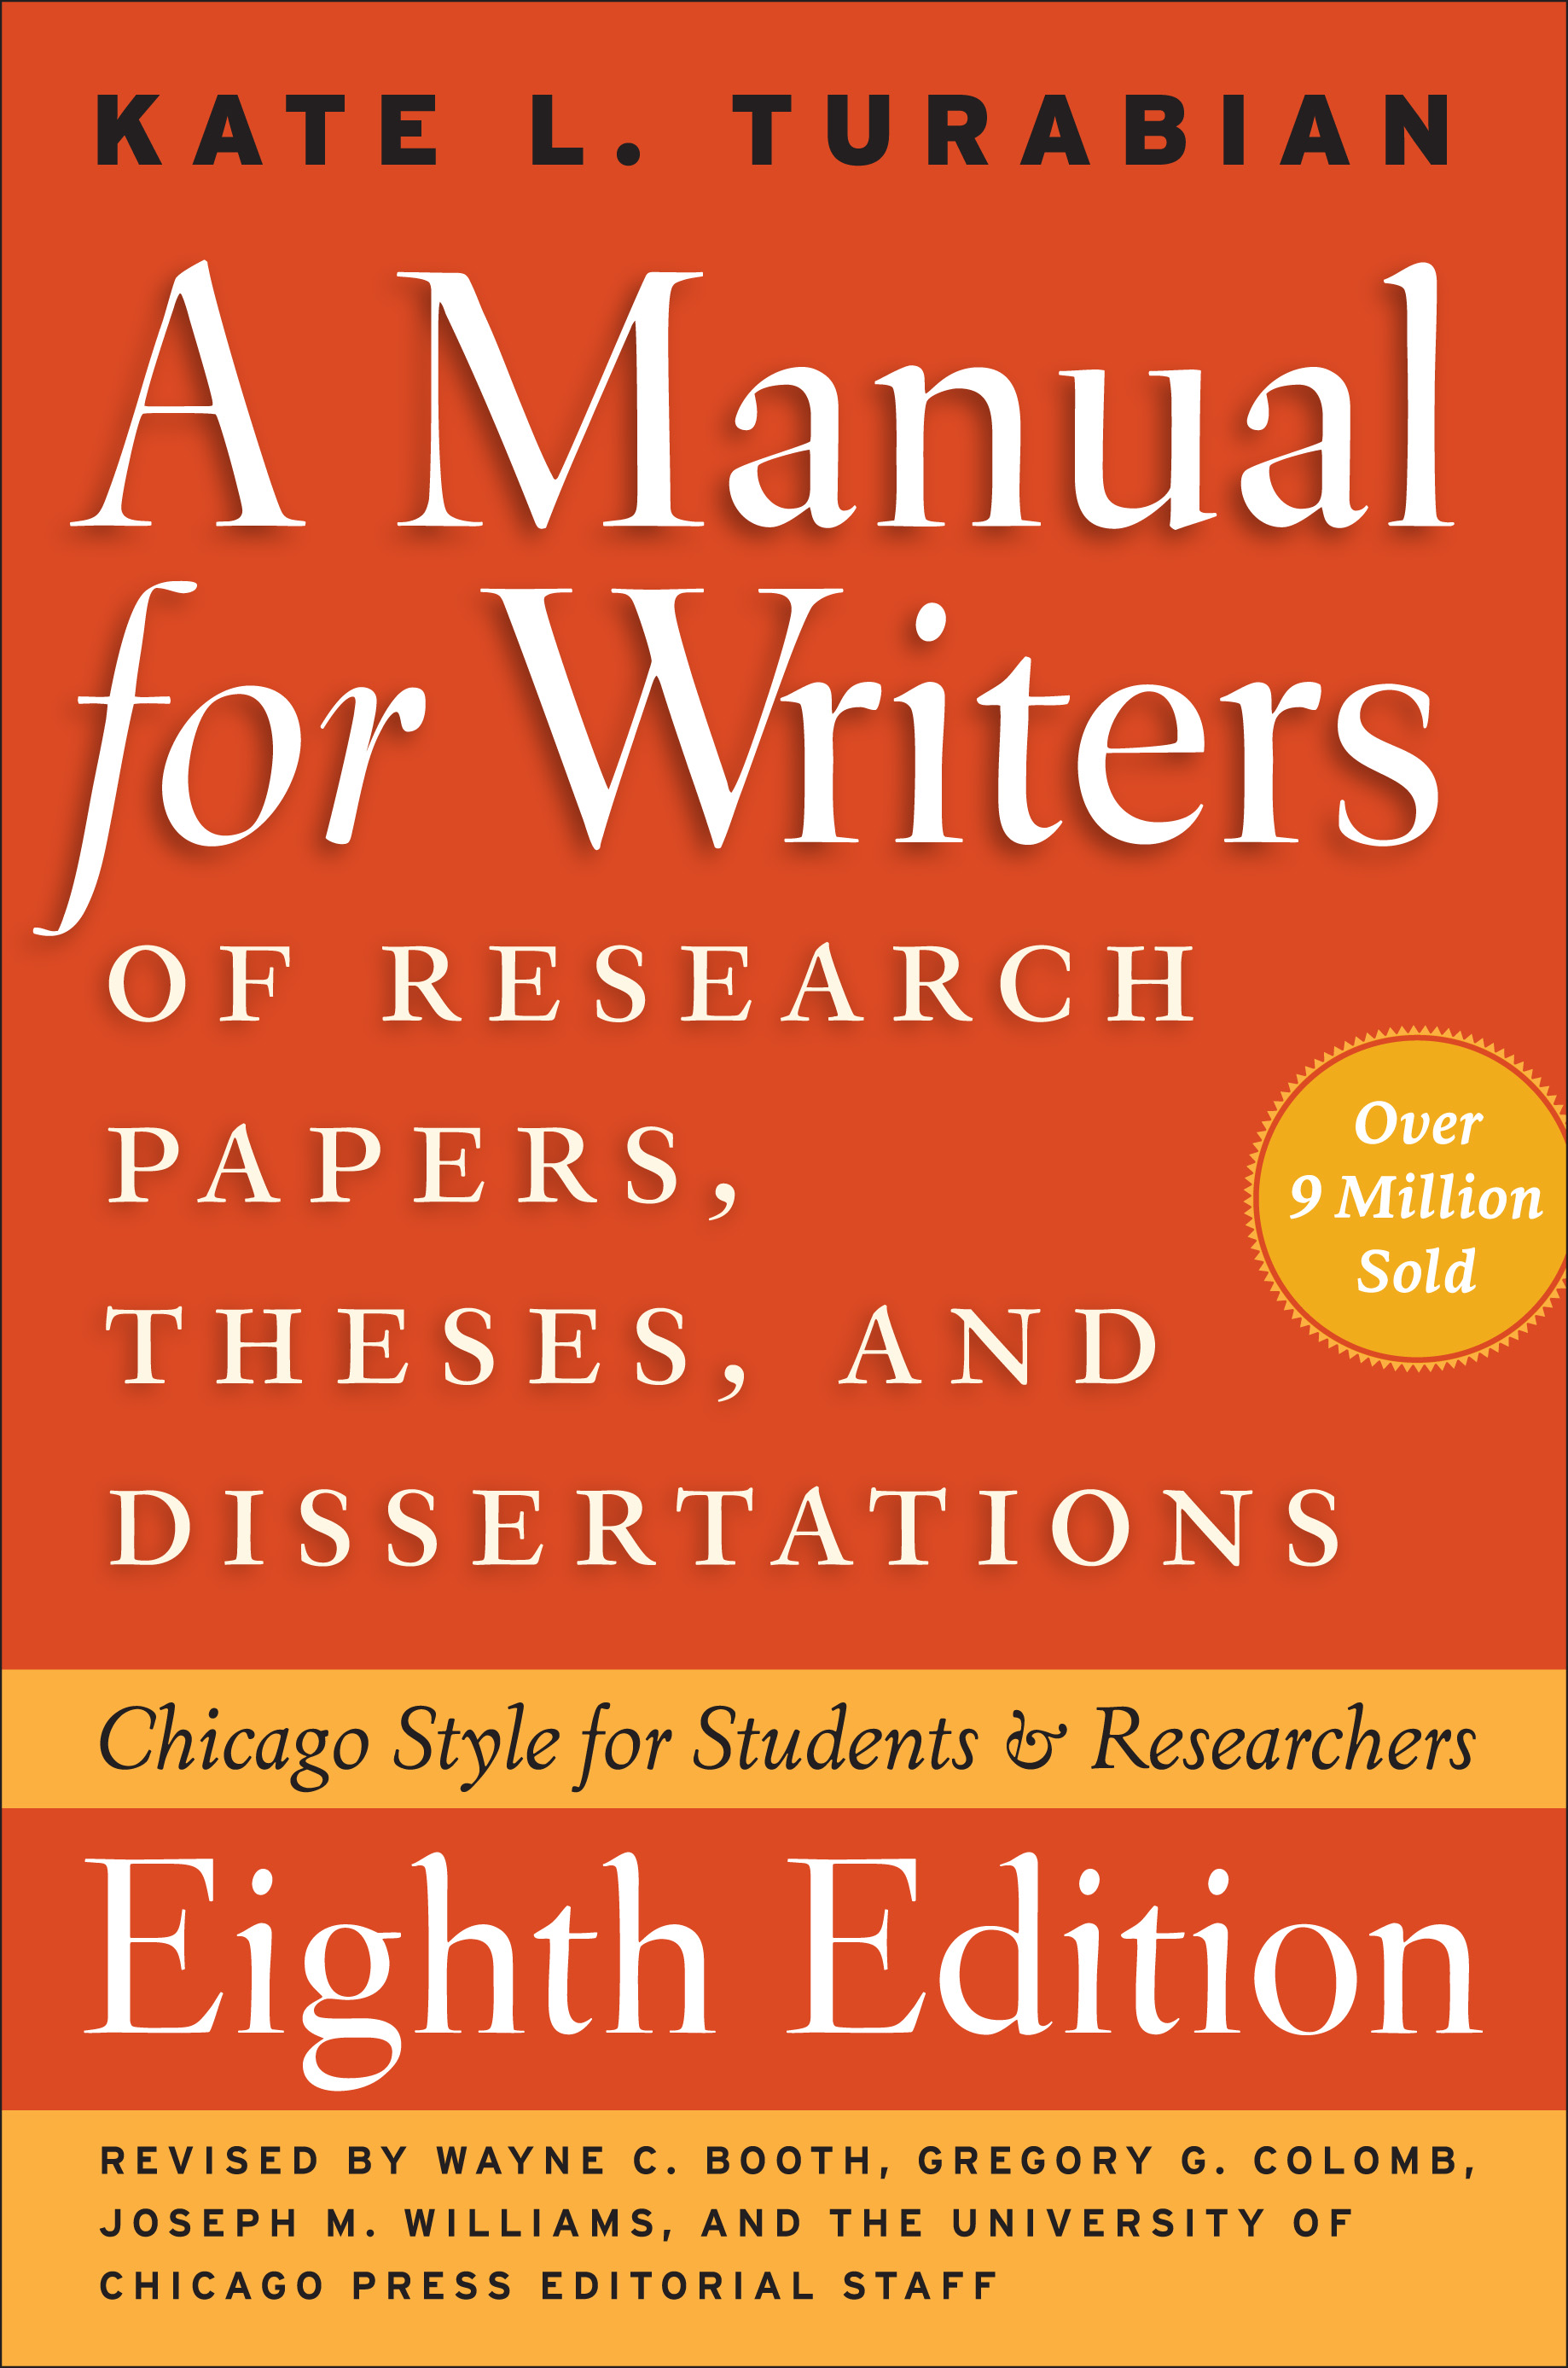 A Manual for Writers of Research Papers, Theses, and Dissertations ...